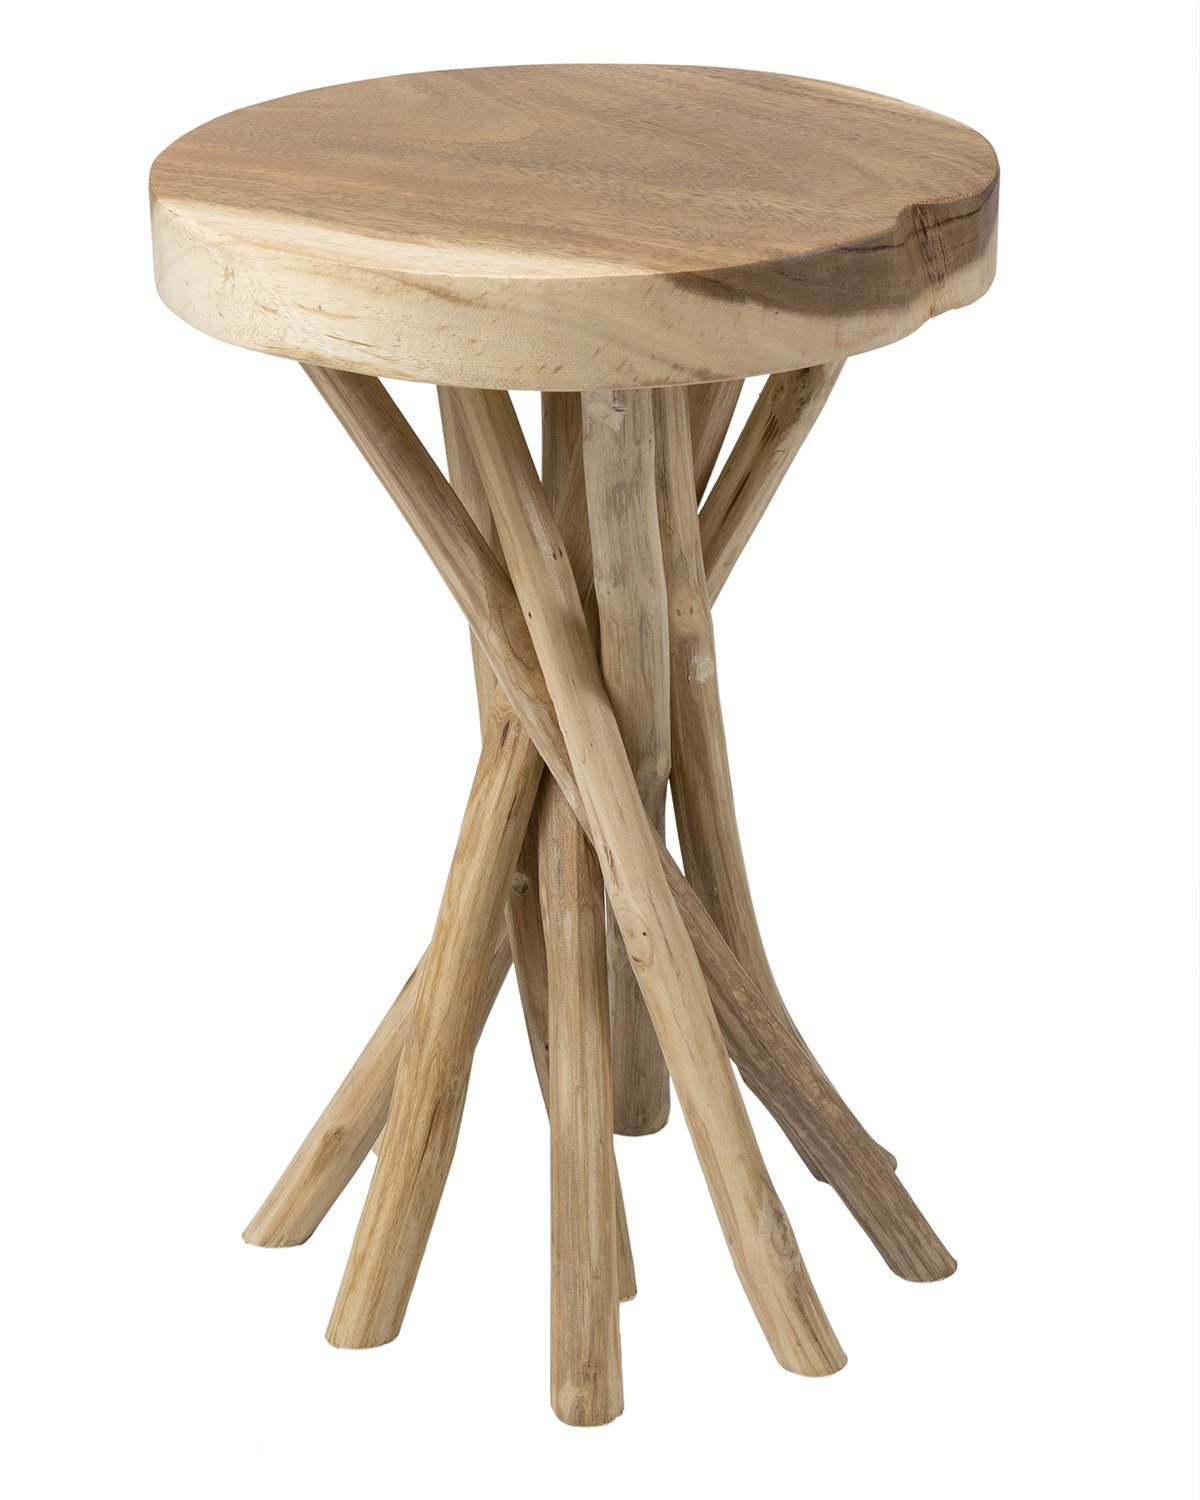 East at Main Kenton Teakwood Round Accent Table, Natural, (14x14x20)